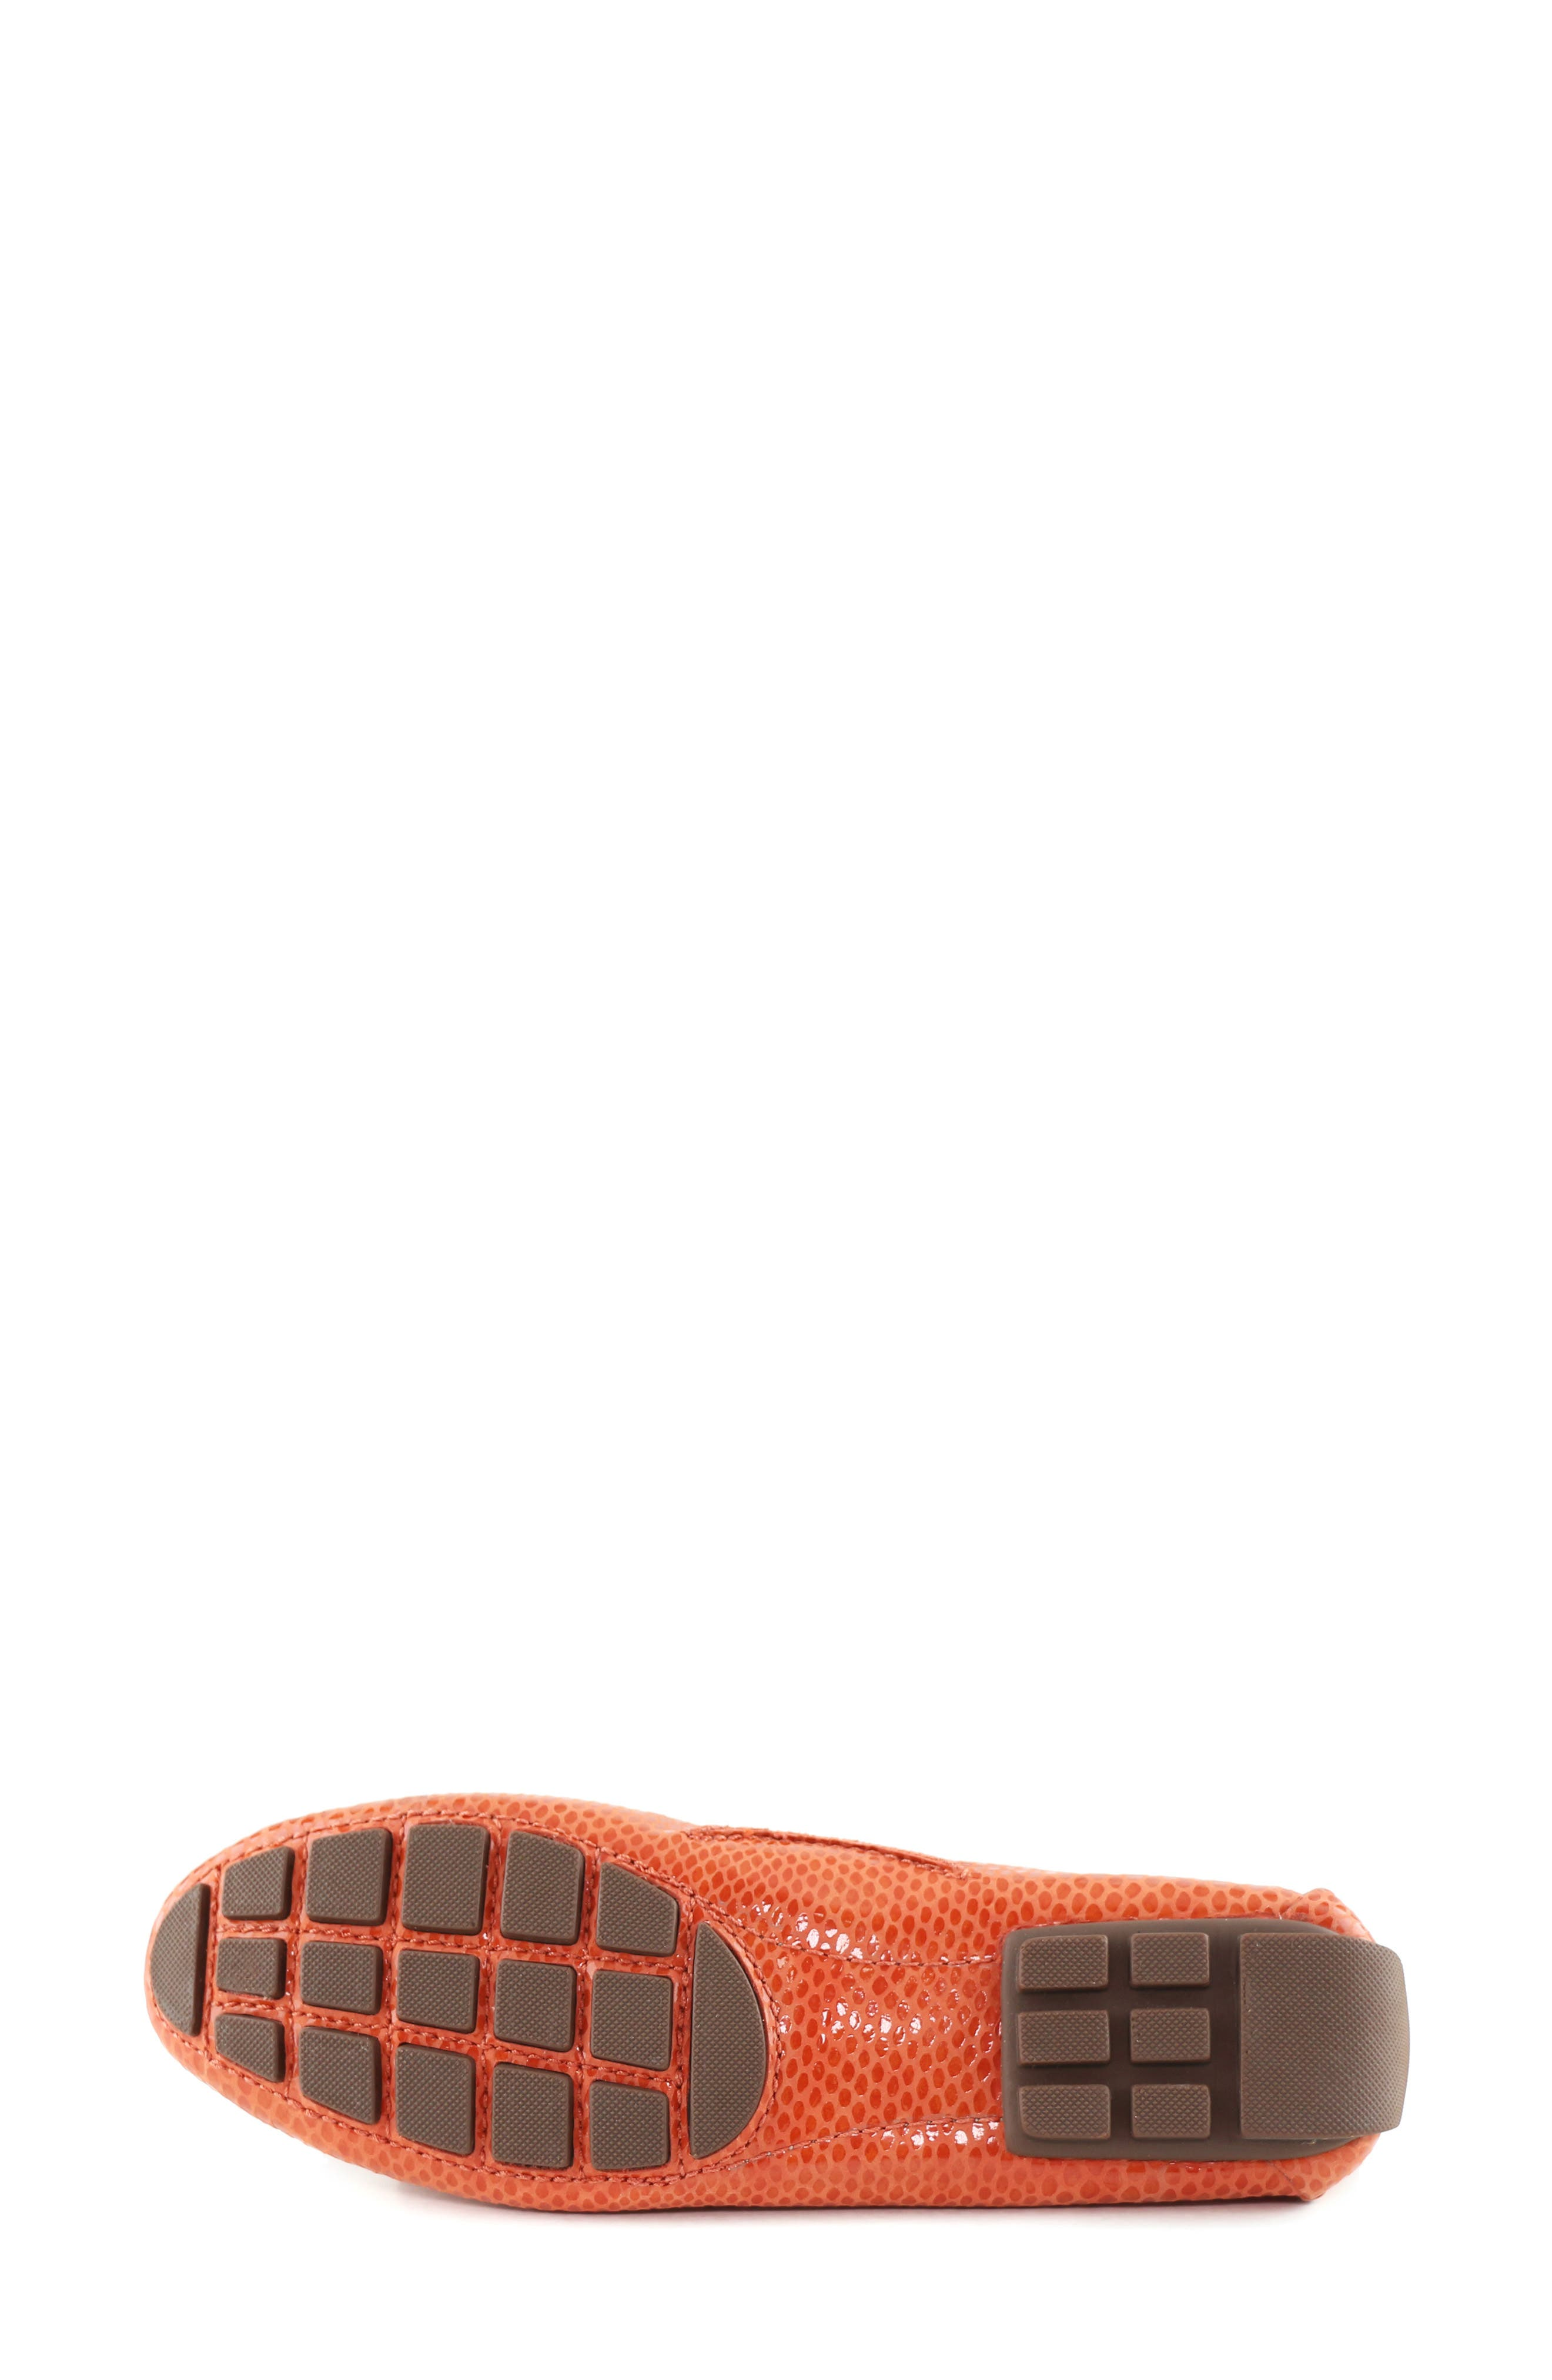 MARC JOSEPH NEW YORK,                             'Cypress Hill' Loafer,                             Alternate thumbnail 6, color,                             CORAL SNAKE PRINT LEATHER